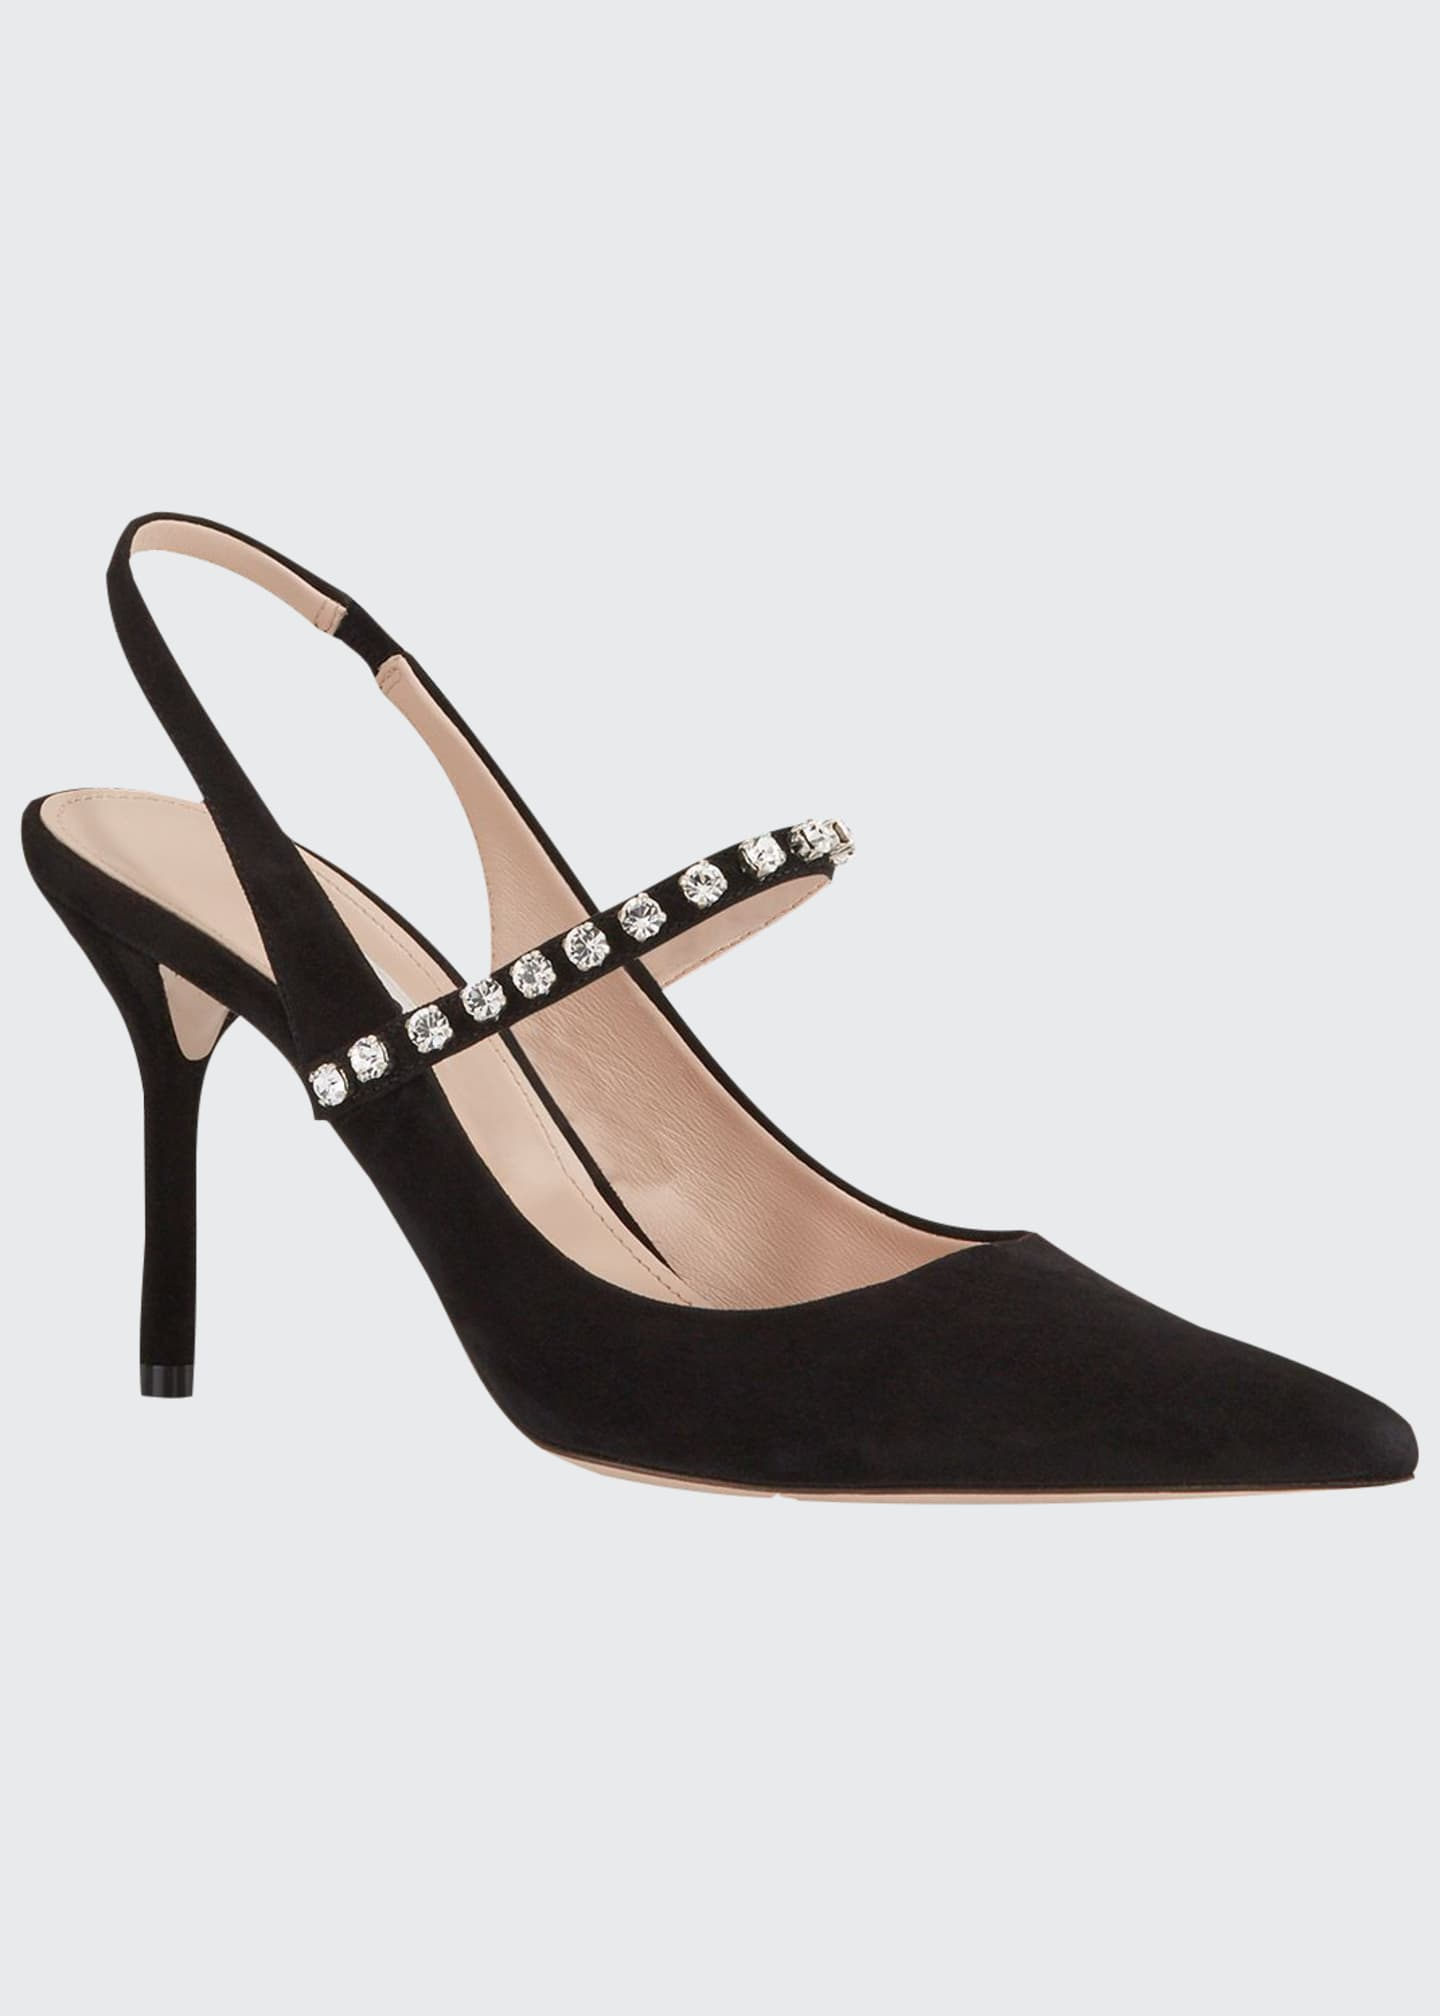 Miu Miu Crystal-Strap Pointed-Toe Pumps